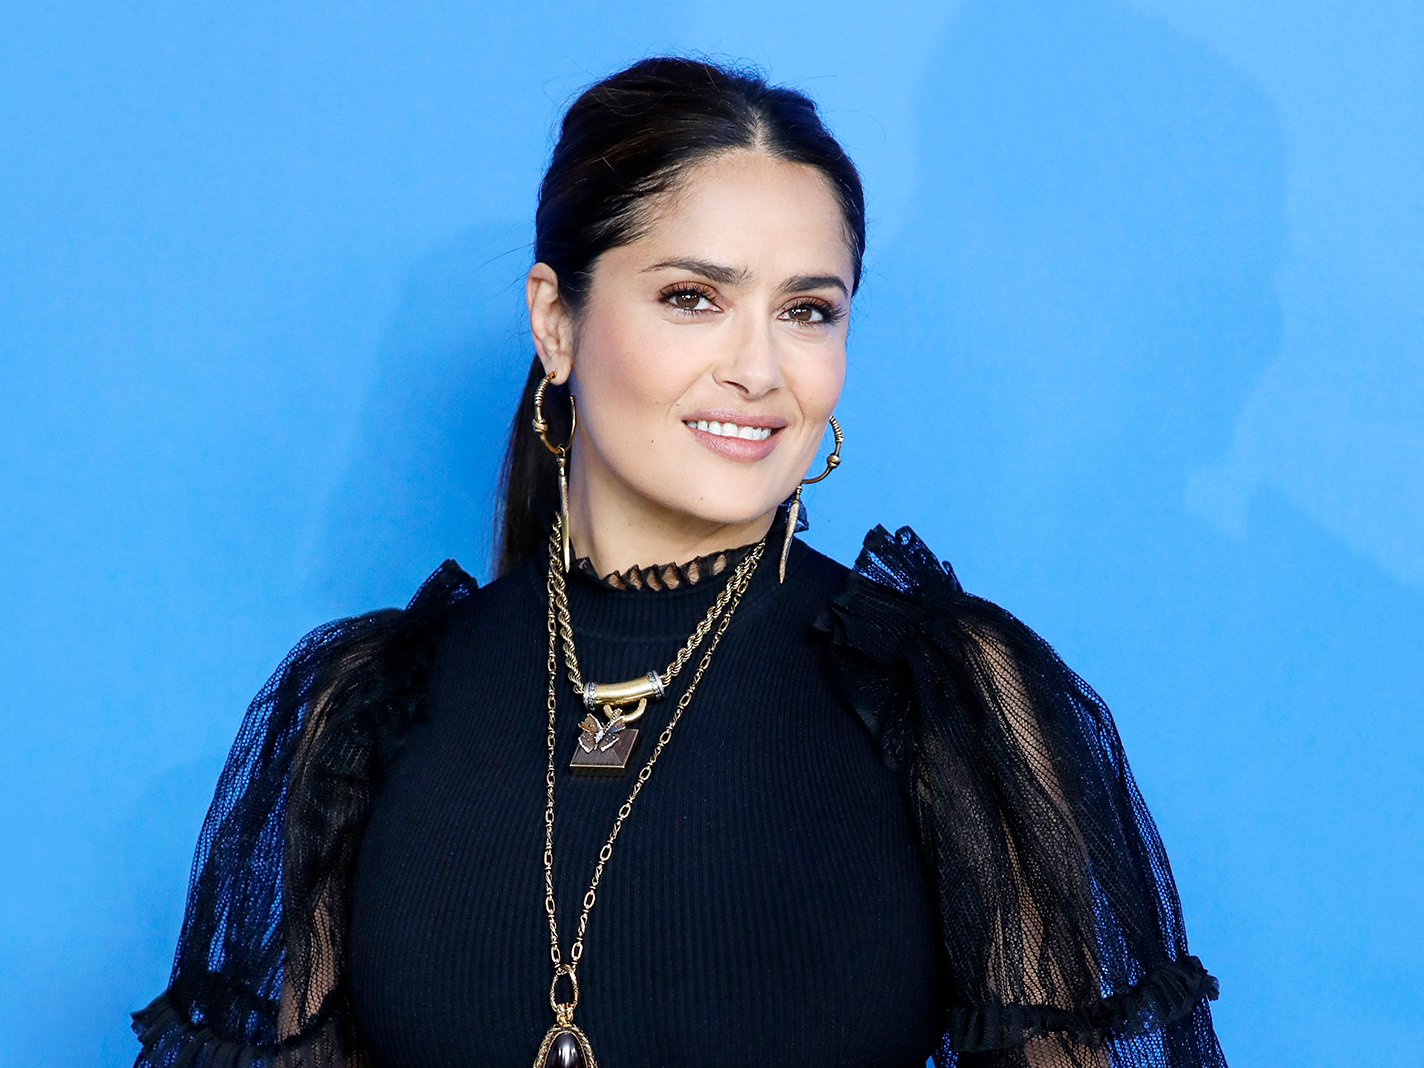 How Salma Hayek's Pet Owl, Her Husband's Company & Role in Gucci Film Are All Interconnected